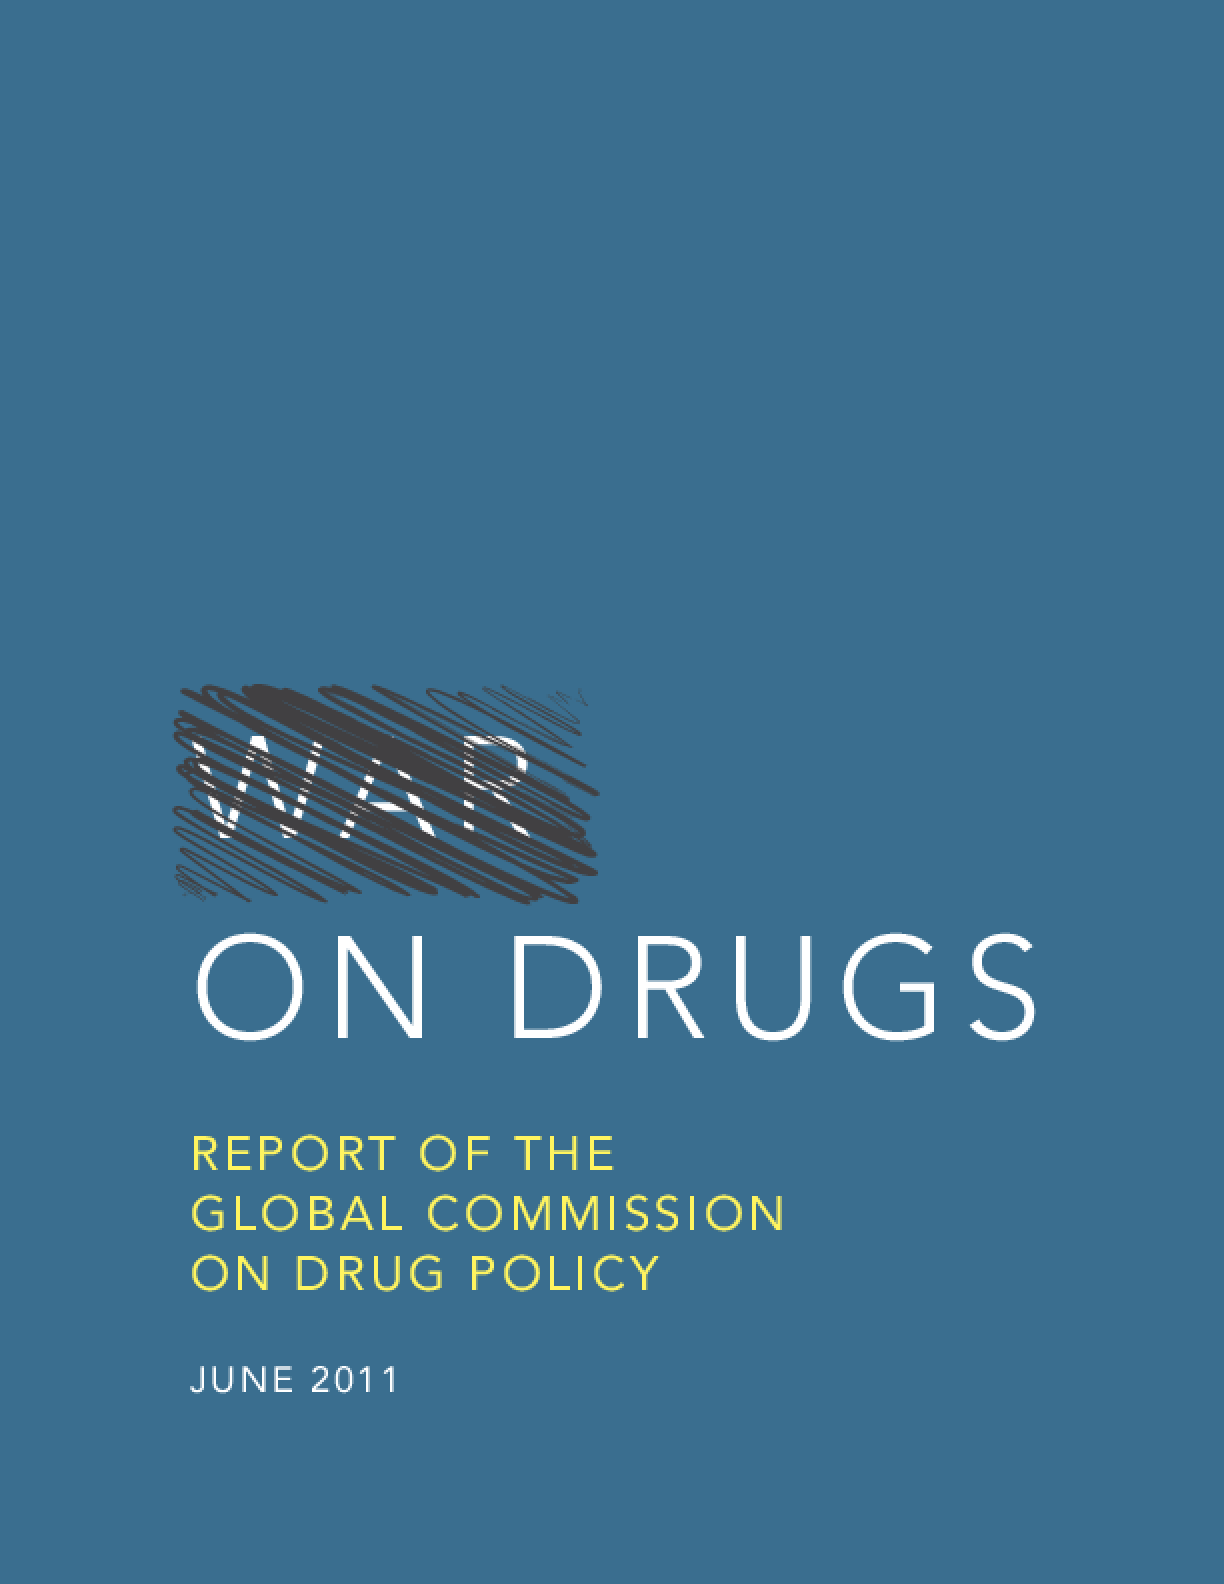 War on Drugs: Report of the Global Commission on Drug Policy